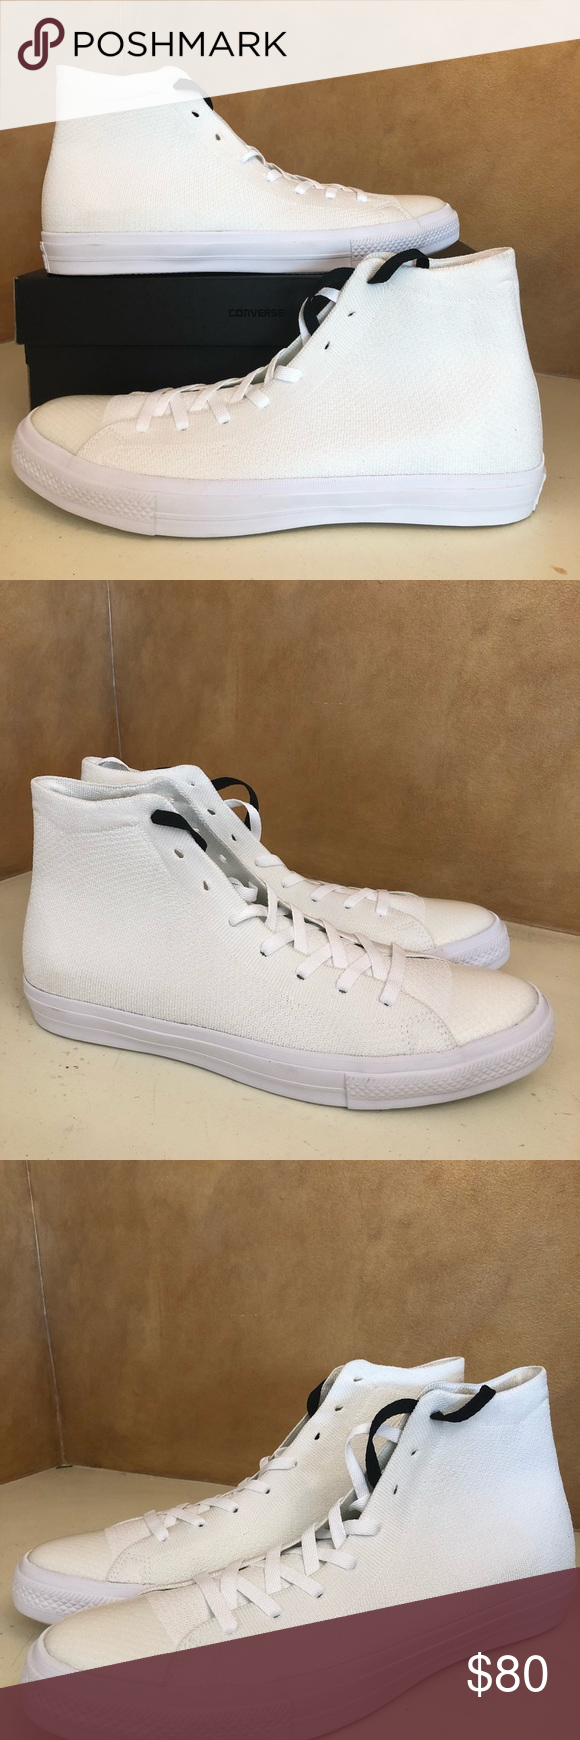 Converse chuck Taylor hi Nike flyknit multi size Questions  Usually  Answered Within The Hour 100% Authentic   We Never Sell Fakes 30 Day Money  Back Return ... 232bdd733